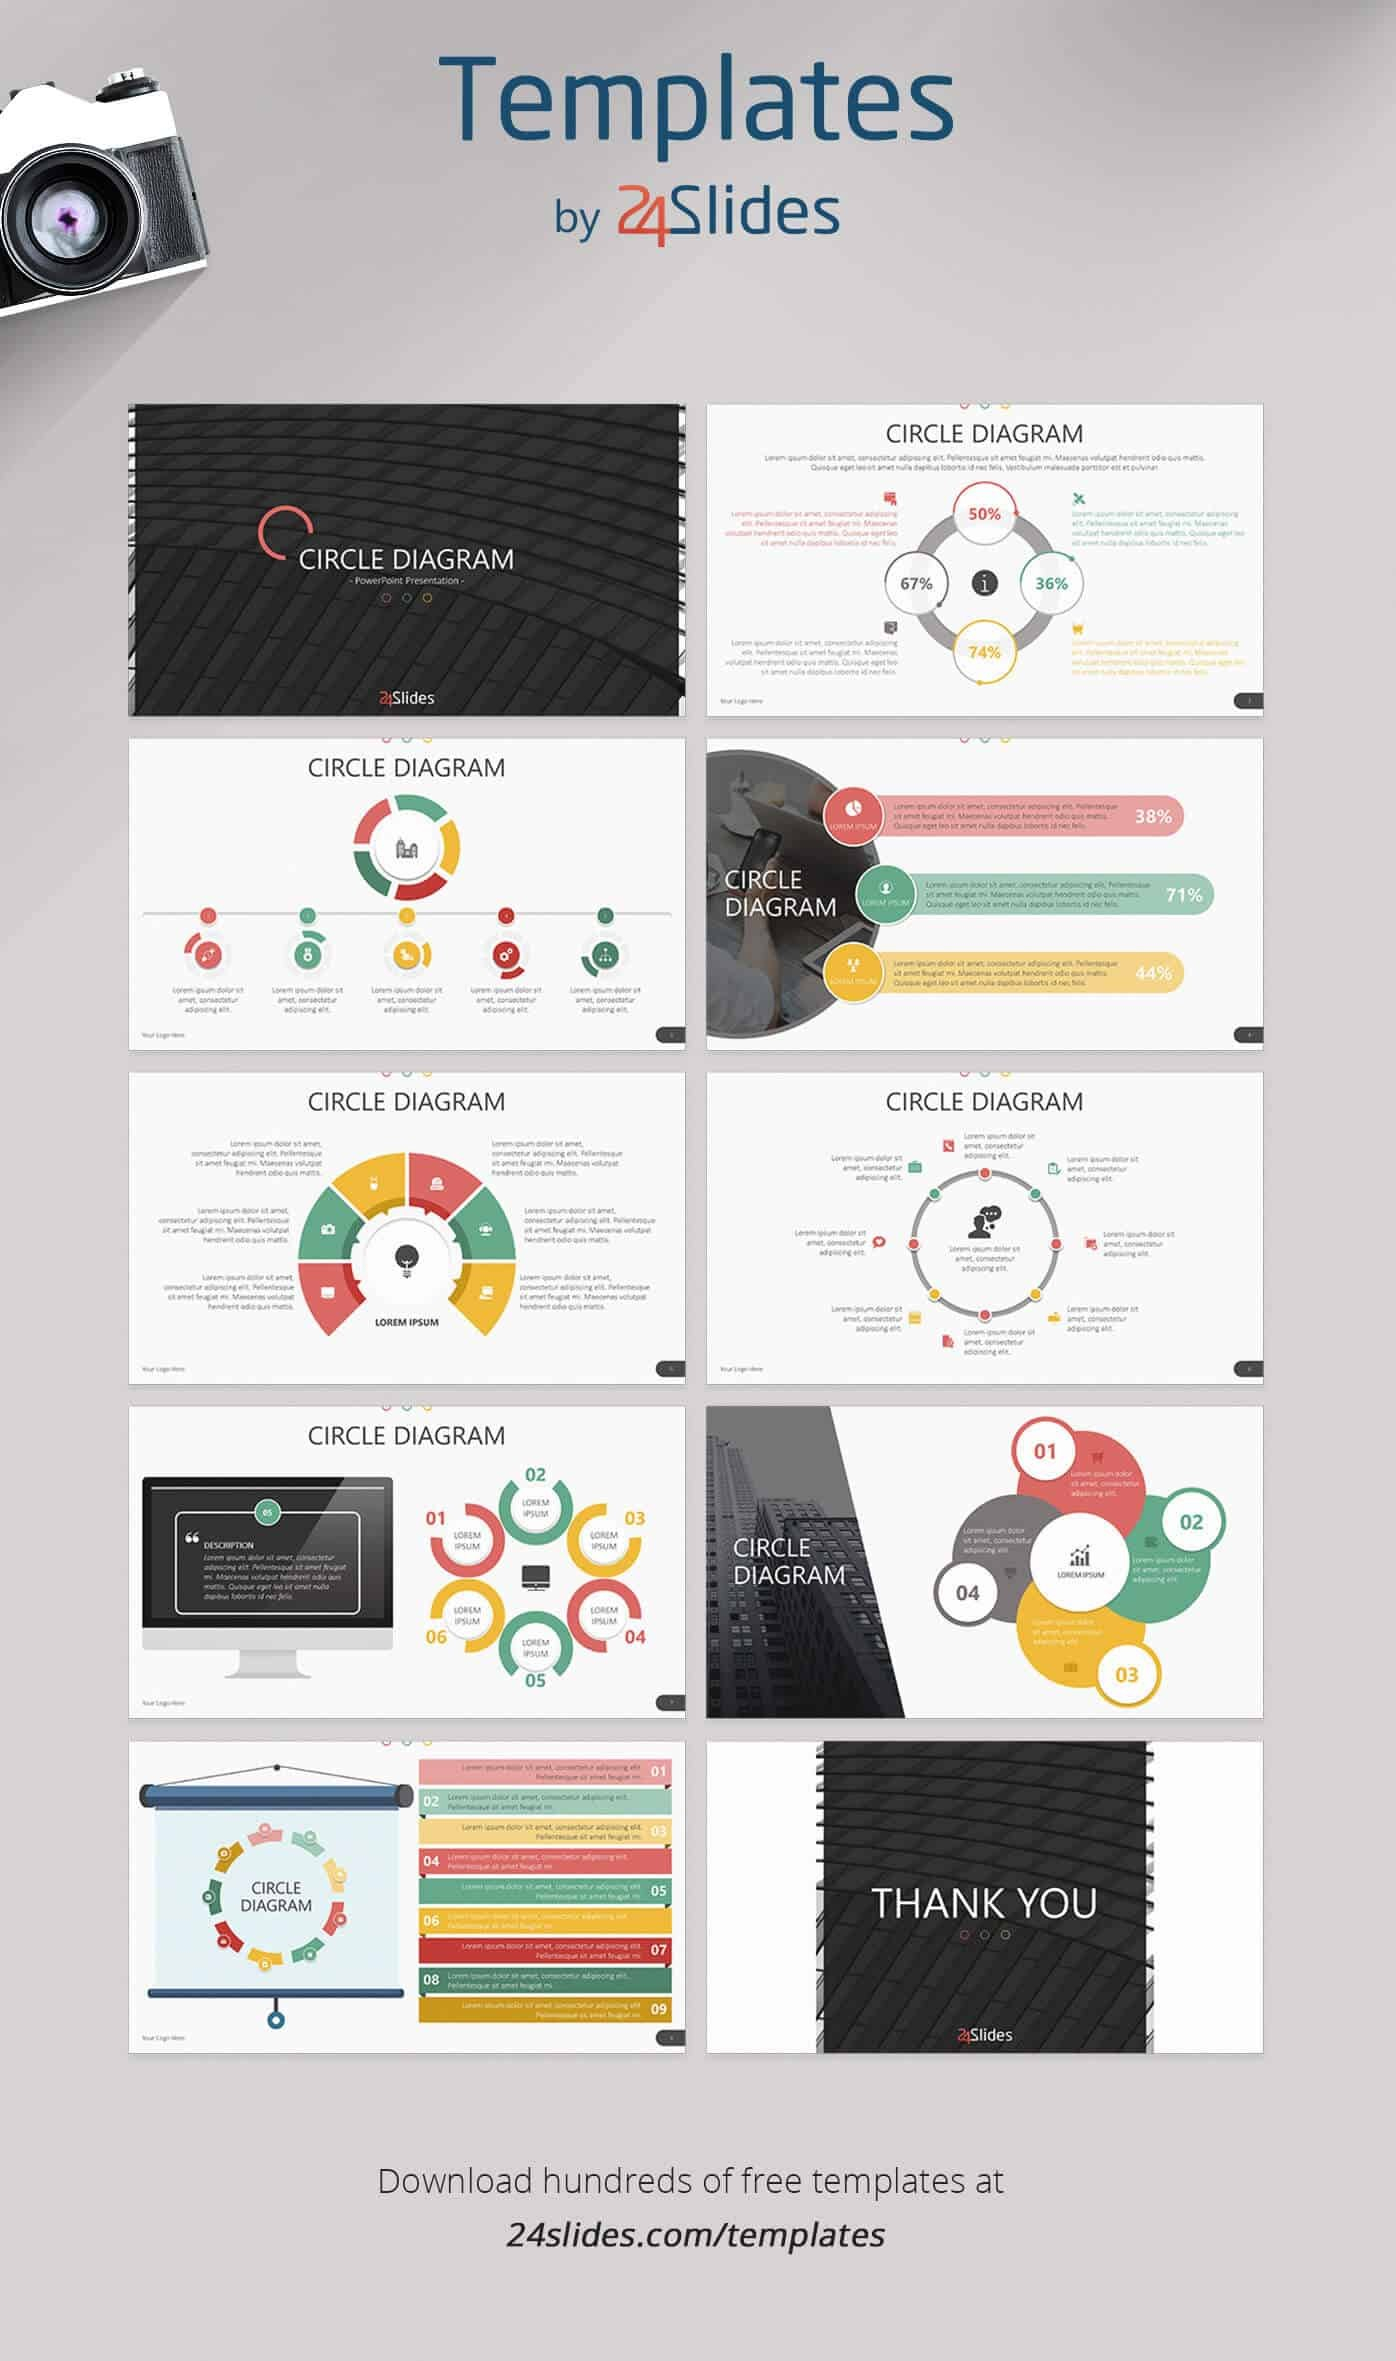 Powerpoint Design Template Borders Templates For Teachers Microsoft Within Where Are Powerpoint Templates Stored